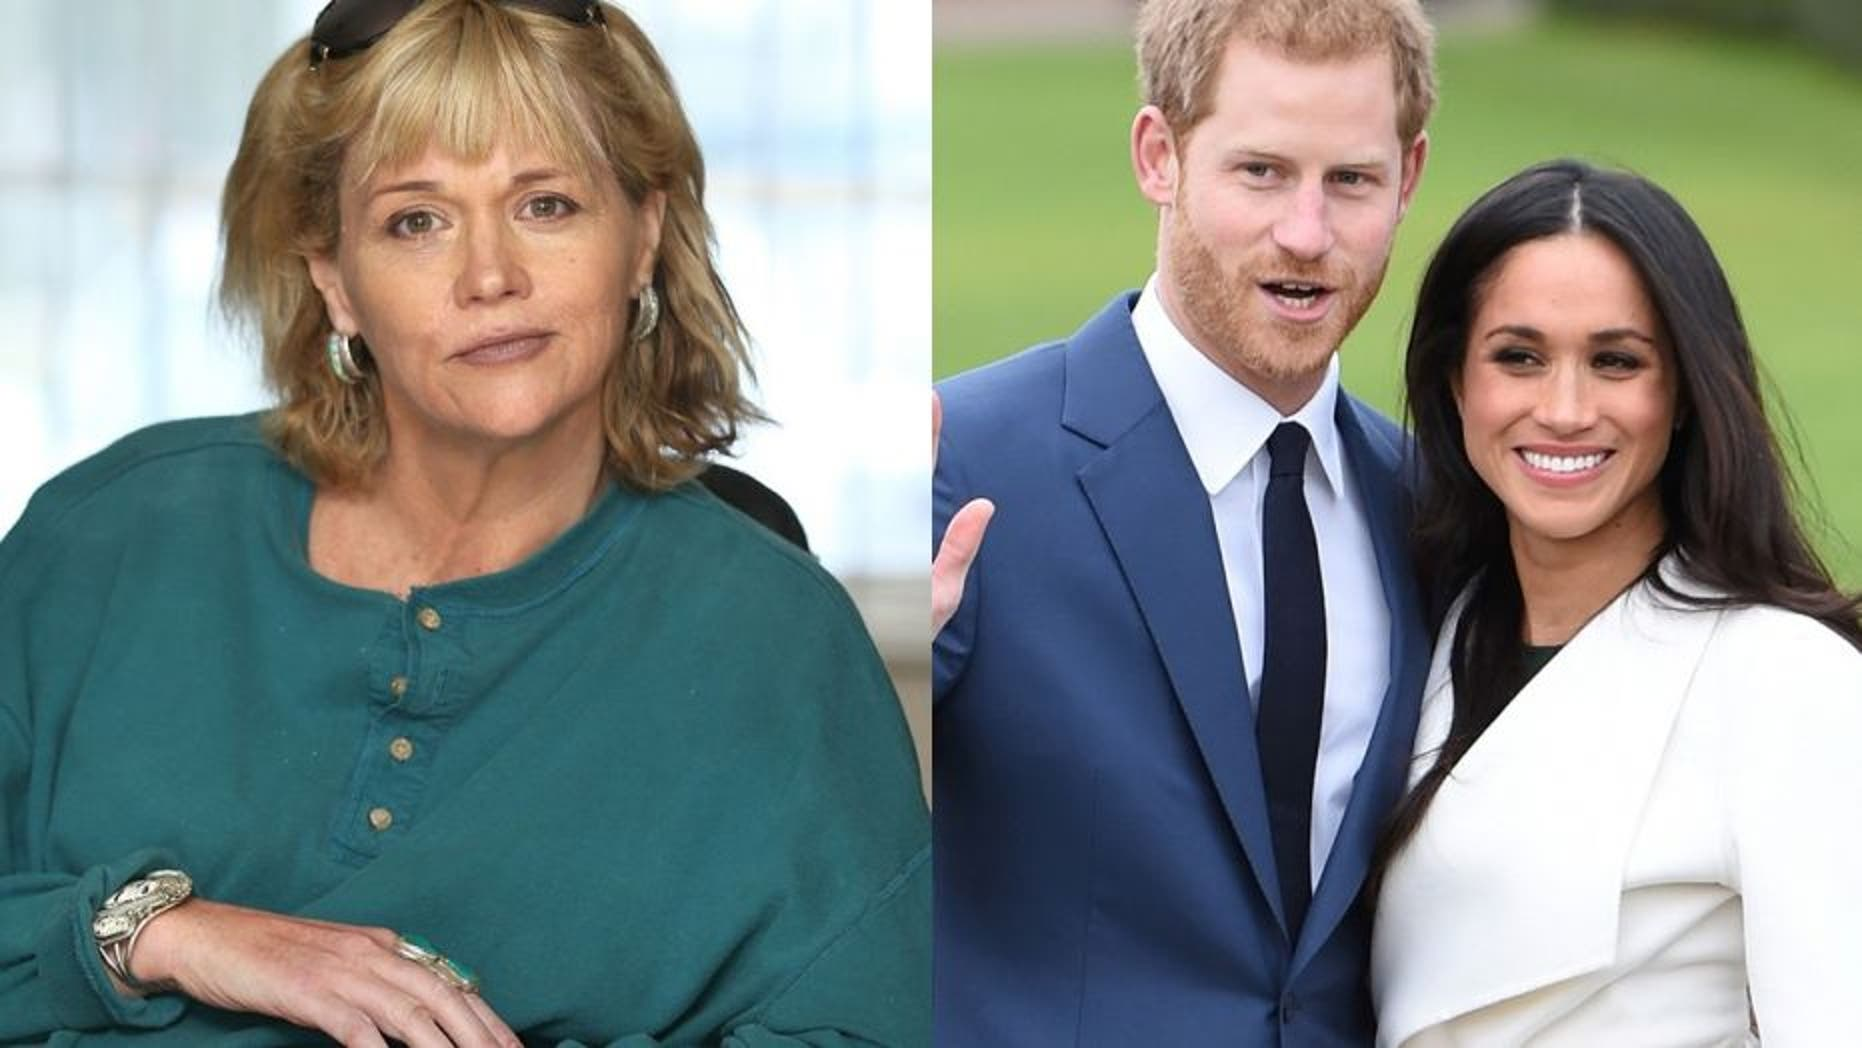 Samantha Grant (left), the half sister of actress Meghan Markle (right), denied trying to cash in on the actress' romance with Prince Harry. (Splash/Reuters)